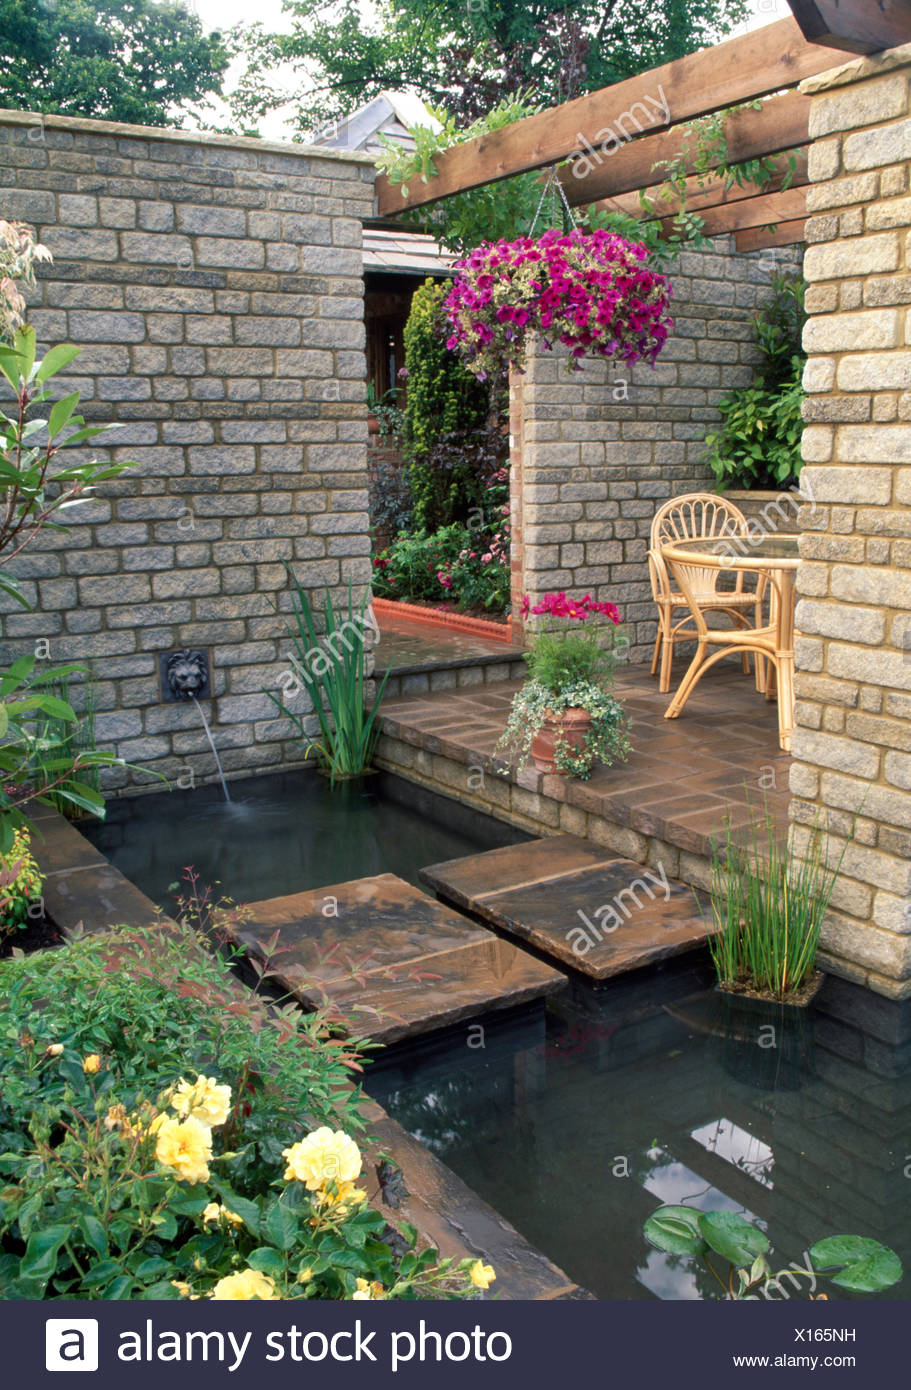 Pink Petunias In Hanging Basket Above Small Rectangular Pool Beside Brick  Patio With Stone Walls